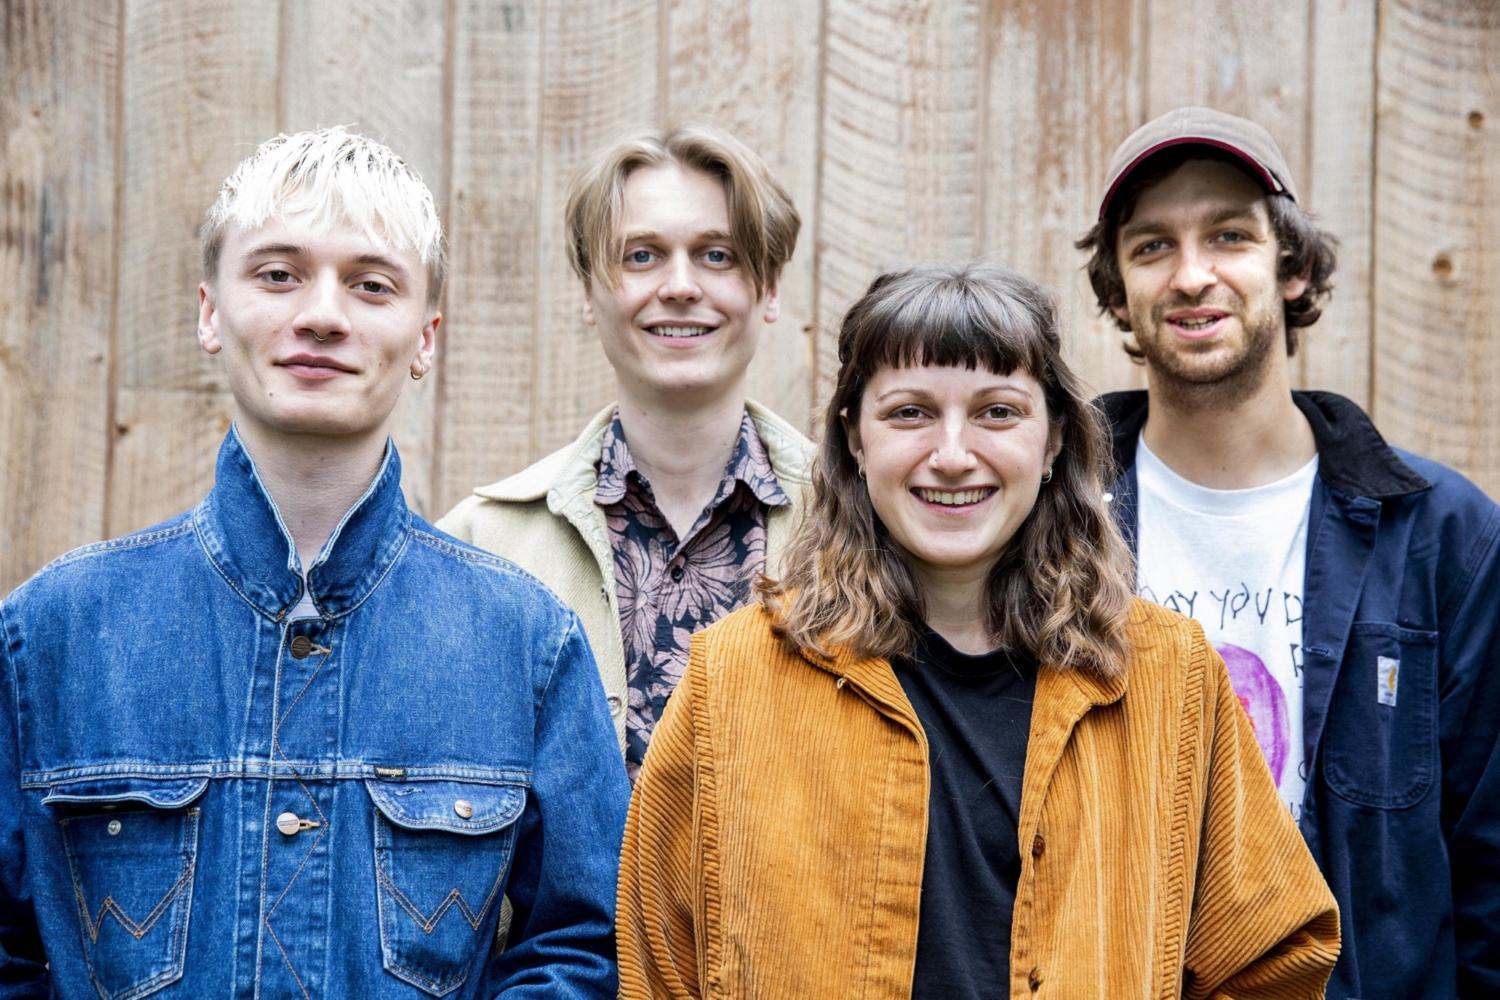 Talk Show release 'Ankle Deep (In A Warm Glass Of Water)'